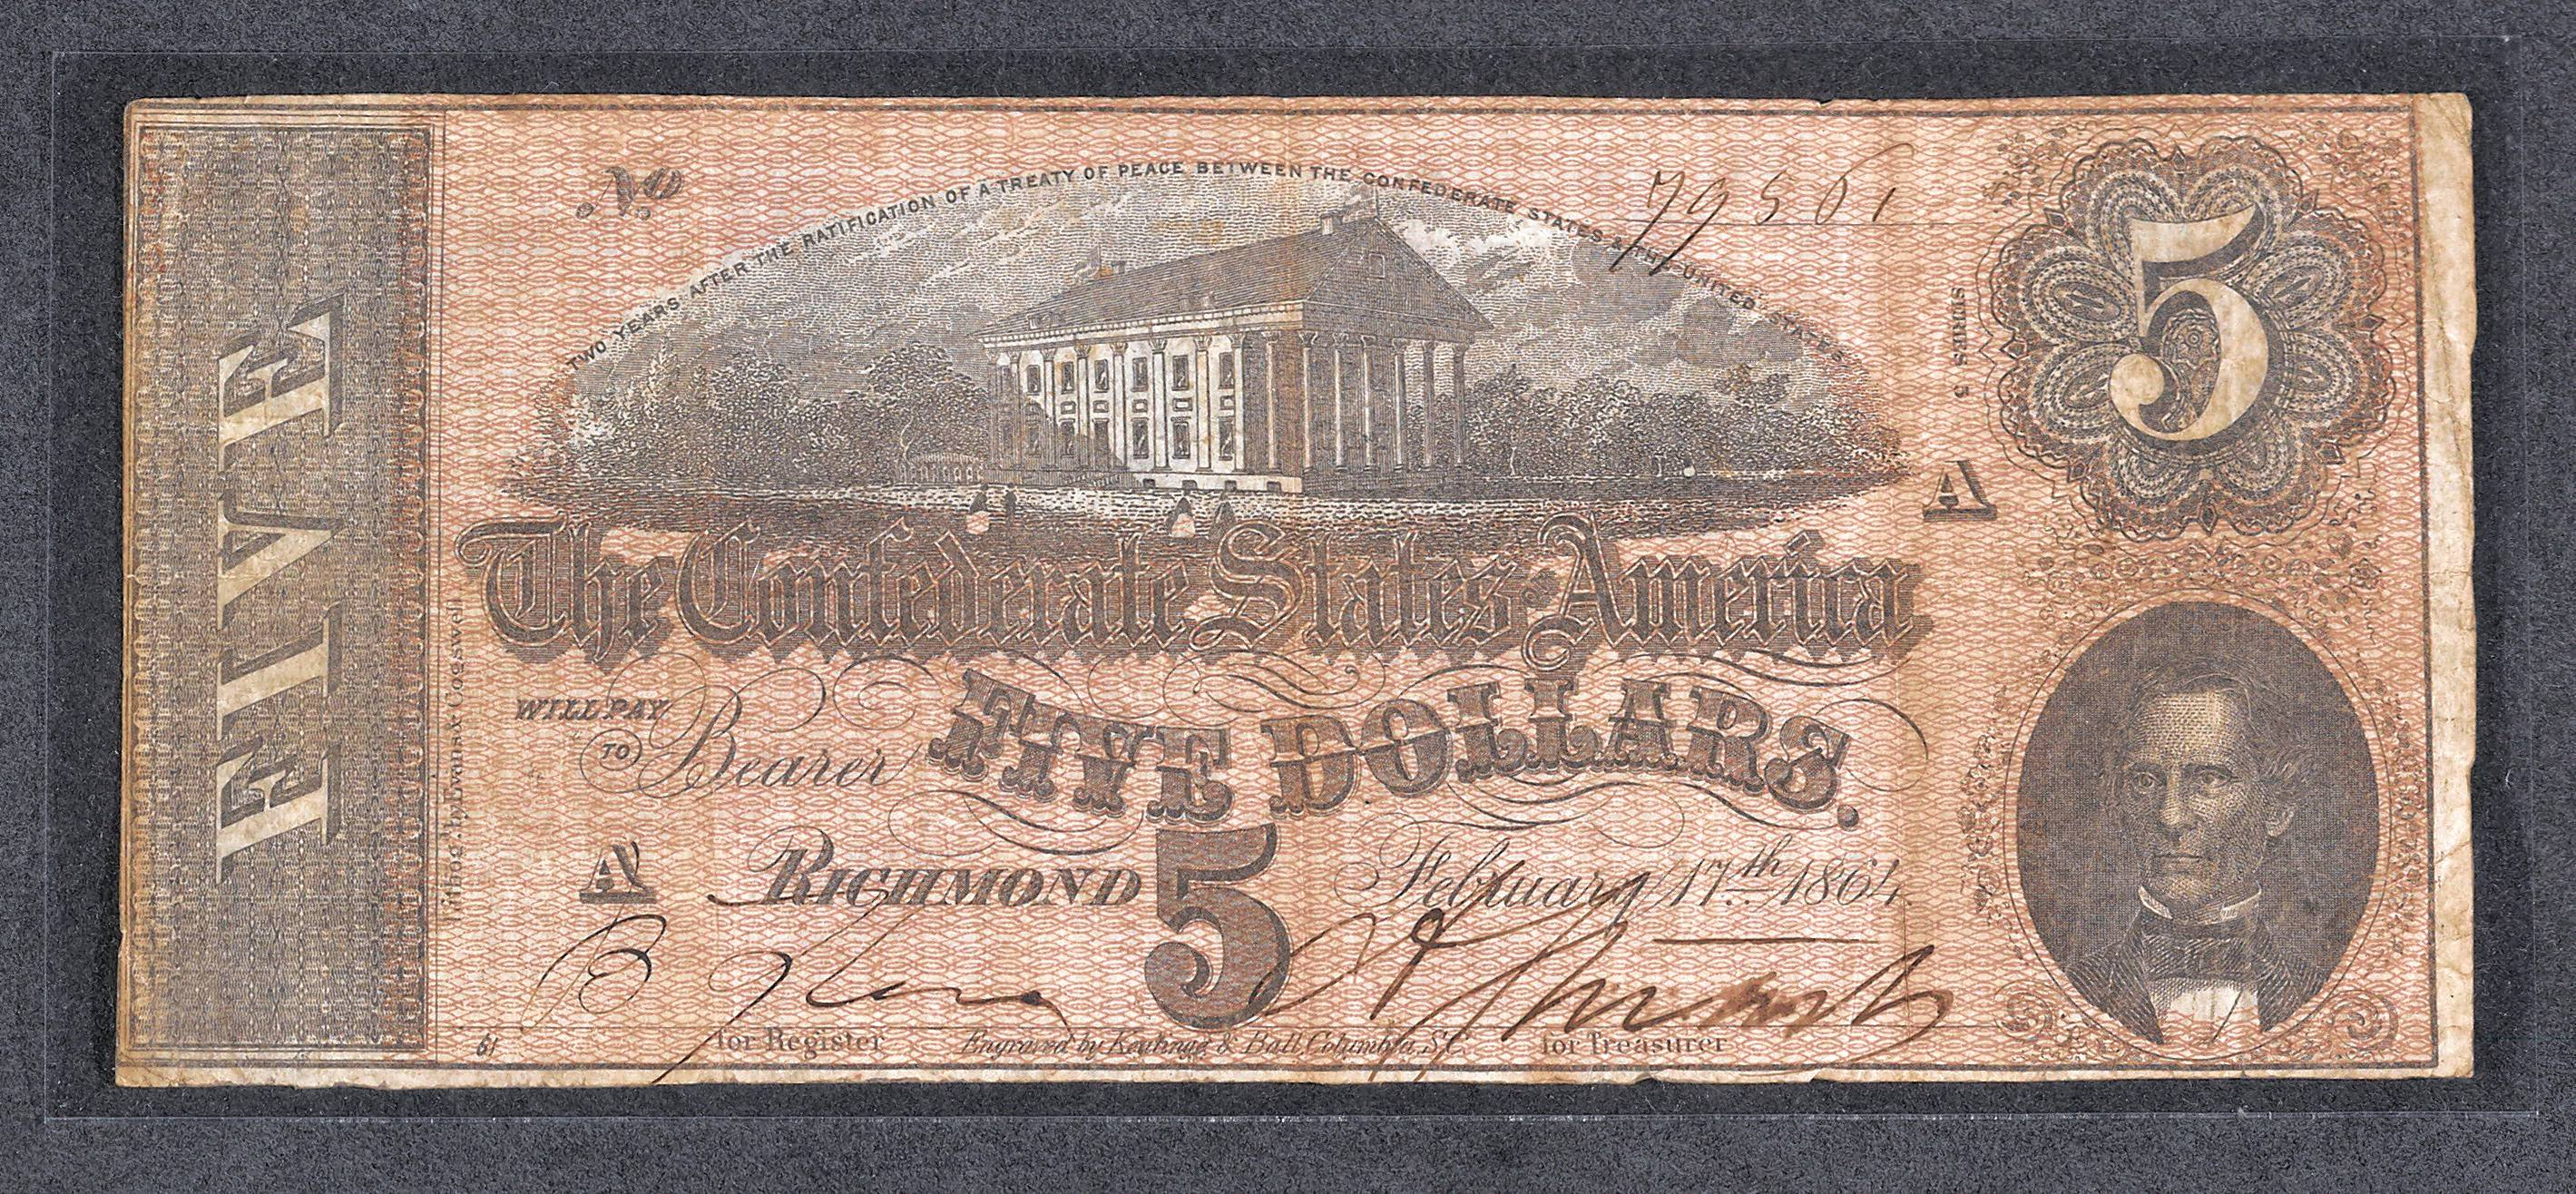 The only currency Abraham Lincoln was carrying in his wallet on the night he was shot was this Confederate $5 bill. He apparently picked up the bill, which was worthless after the South surrendered the Civil War, during a trip to Virginia earlier that month.